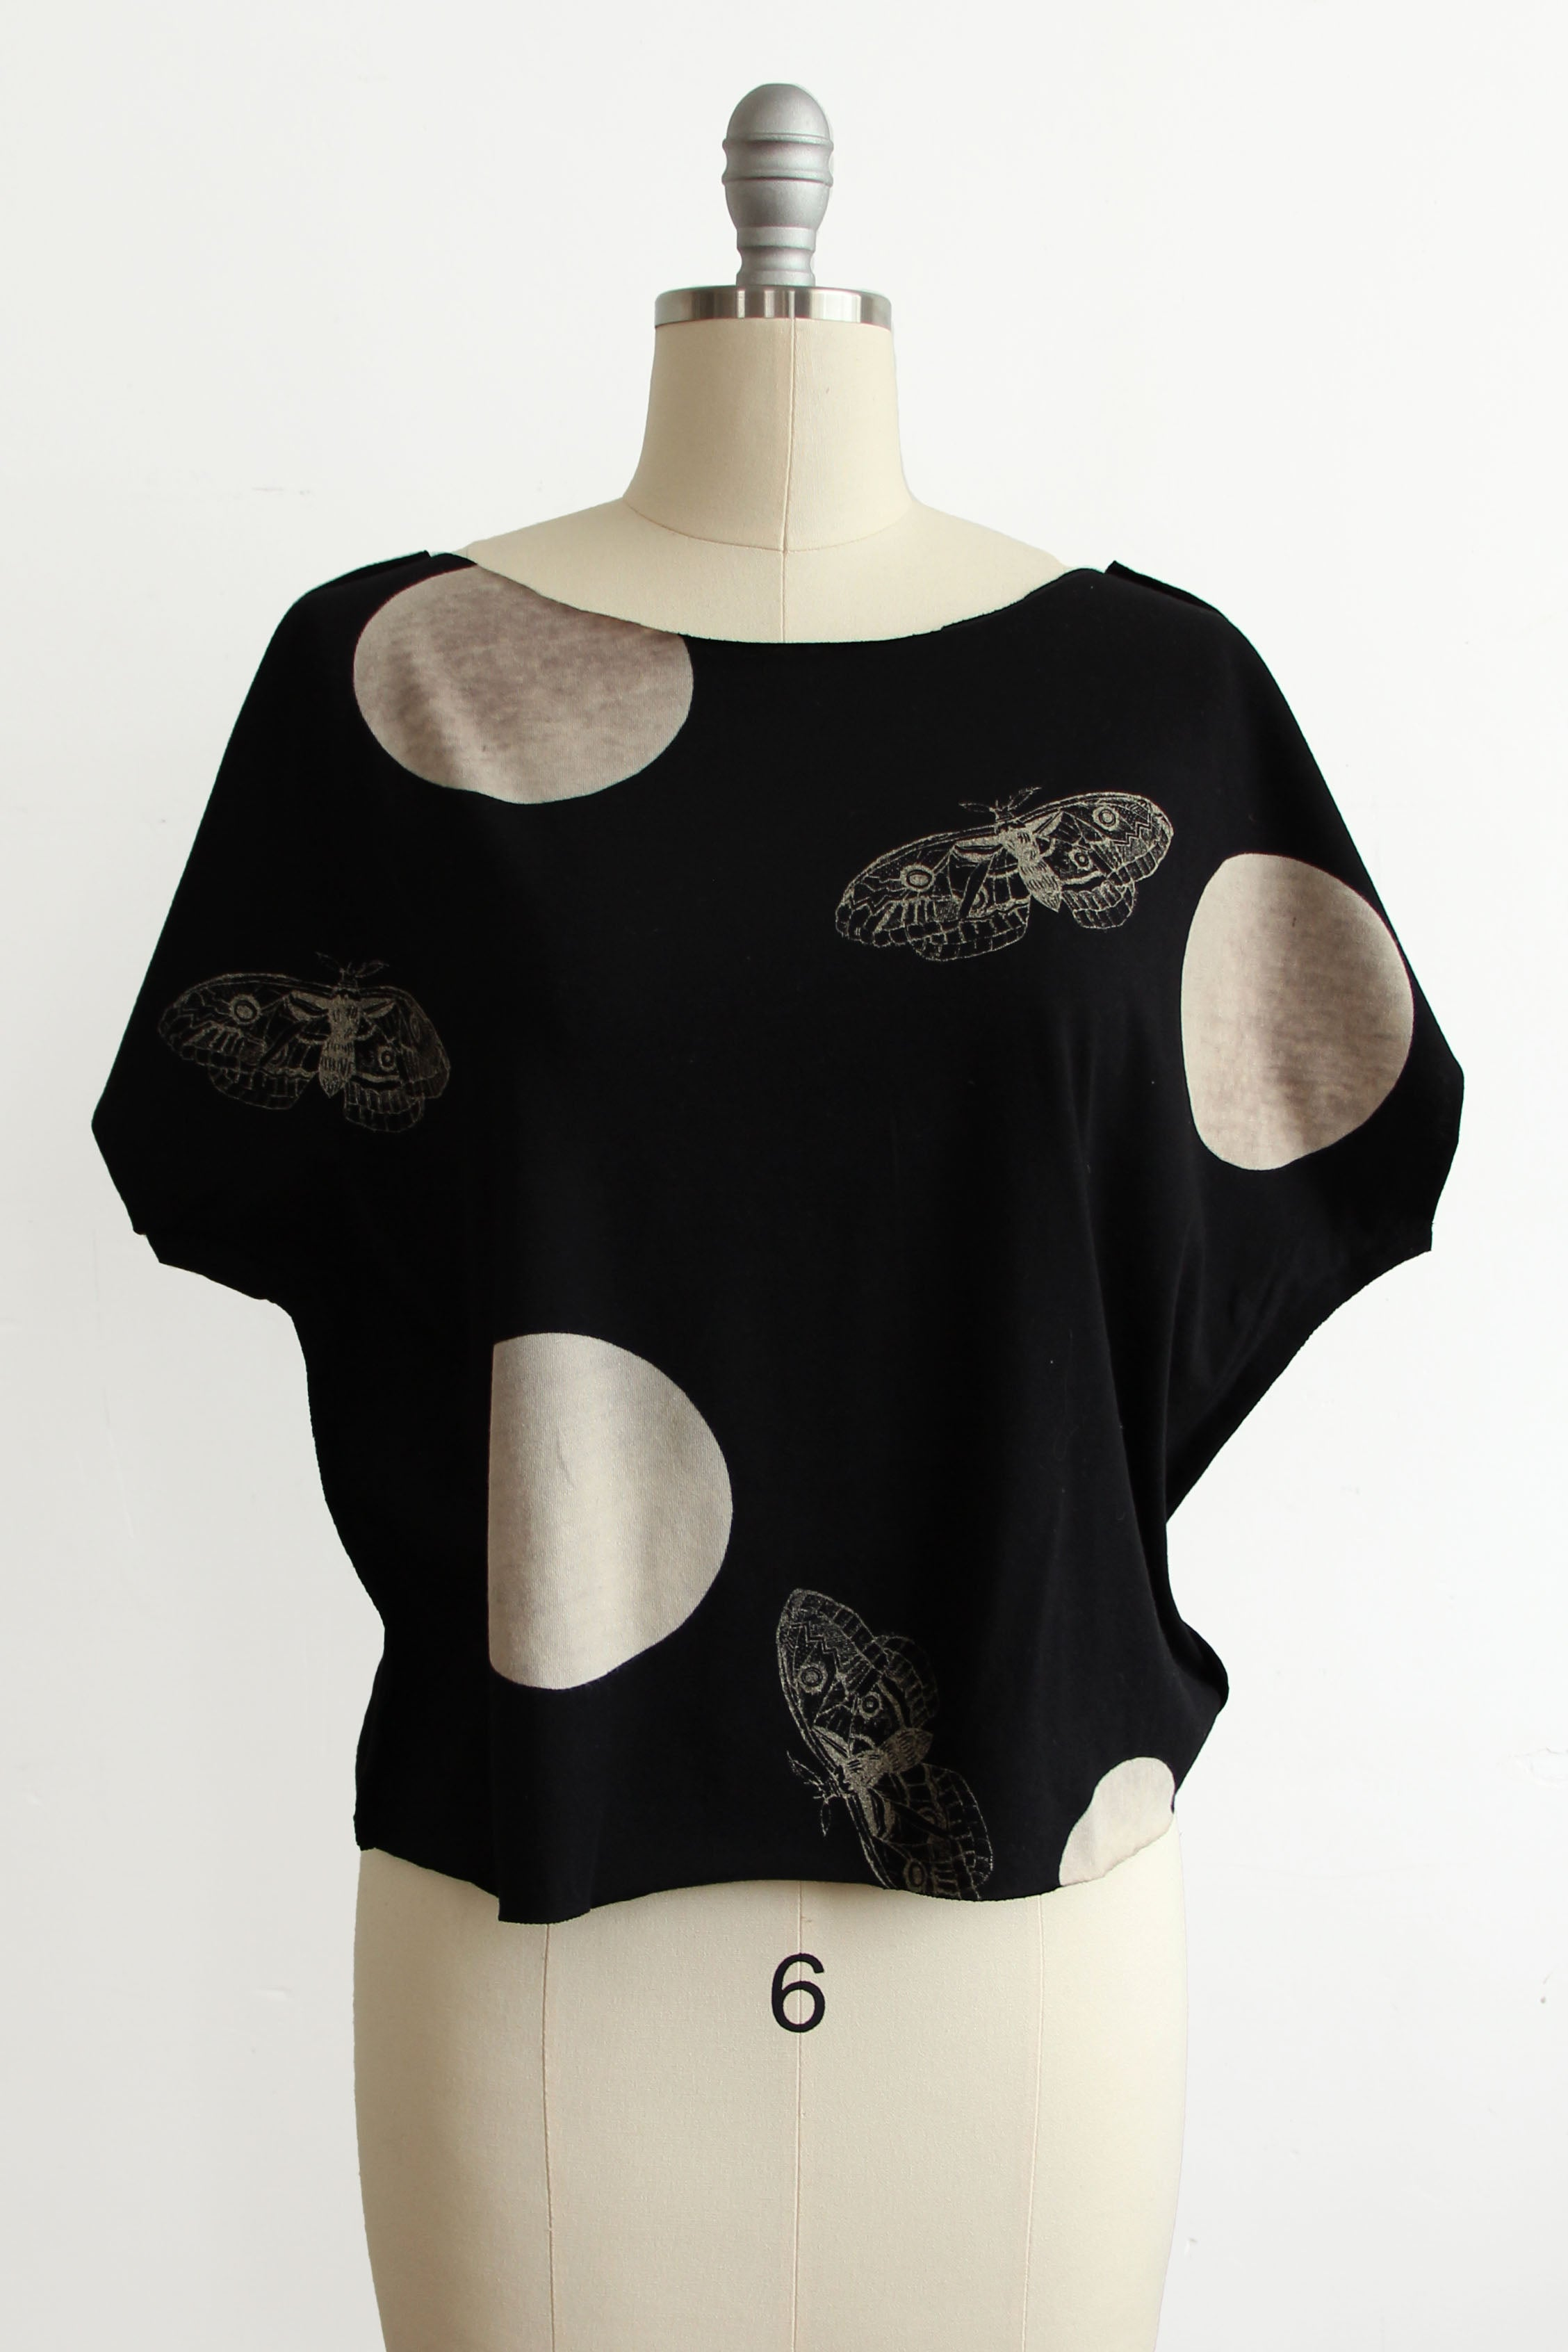 Silk Rope Garland w/ Flowers #6